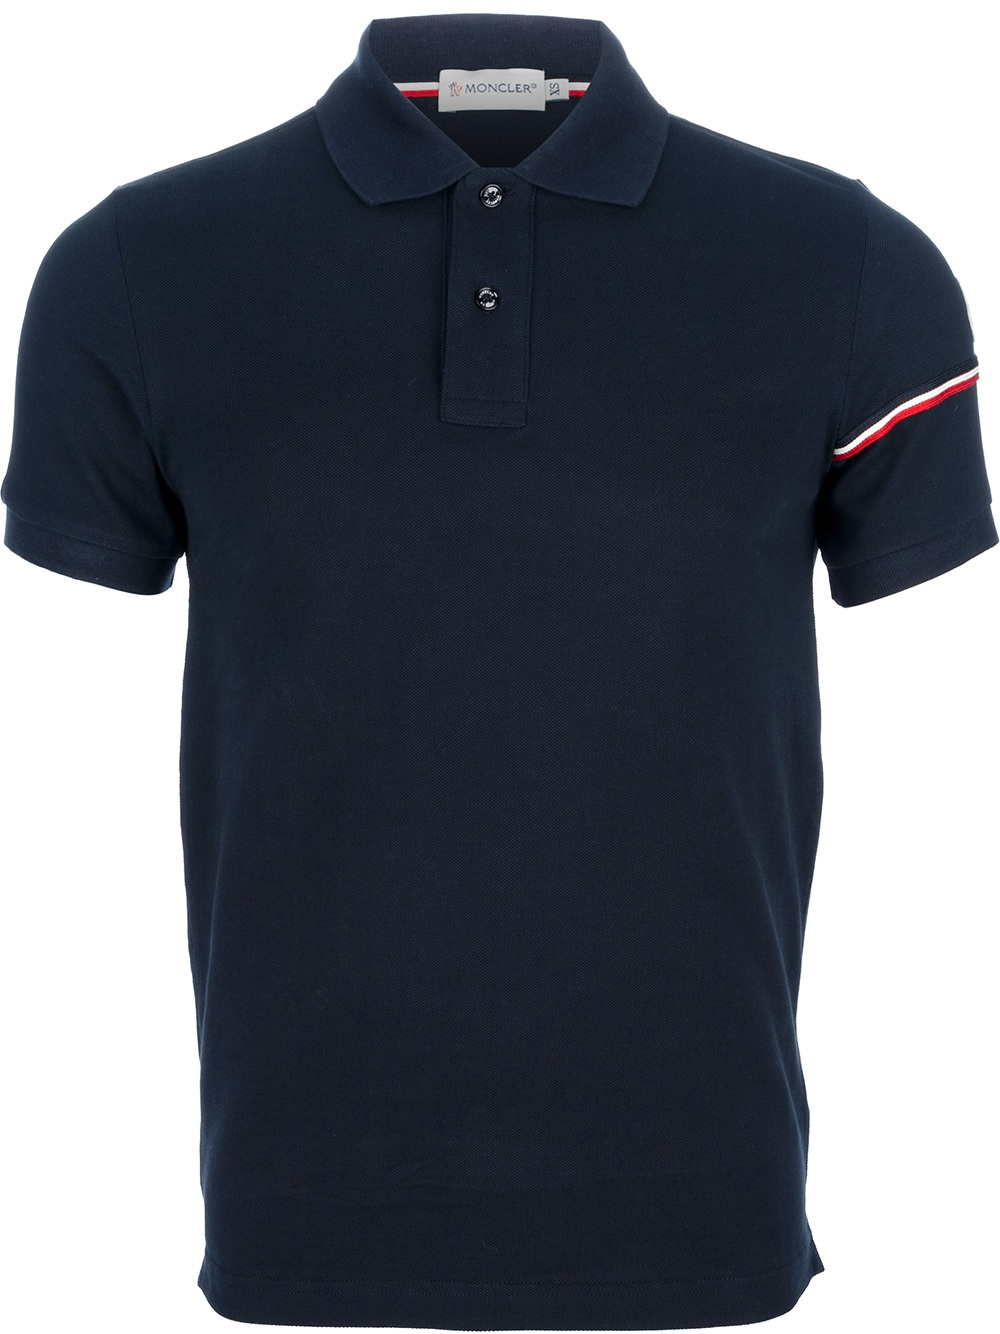 Lyst moncler classic polo shirt in blue for men Man in polo shirt